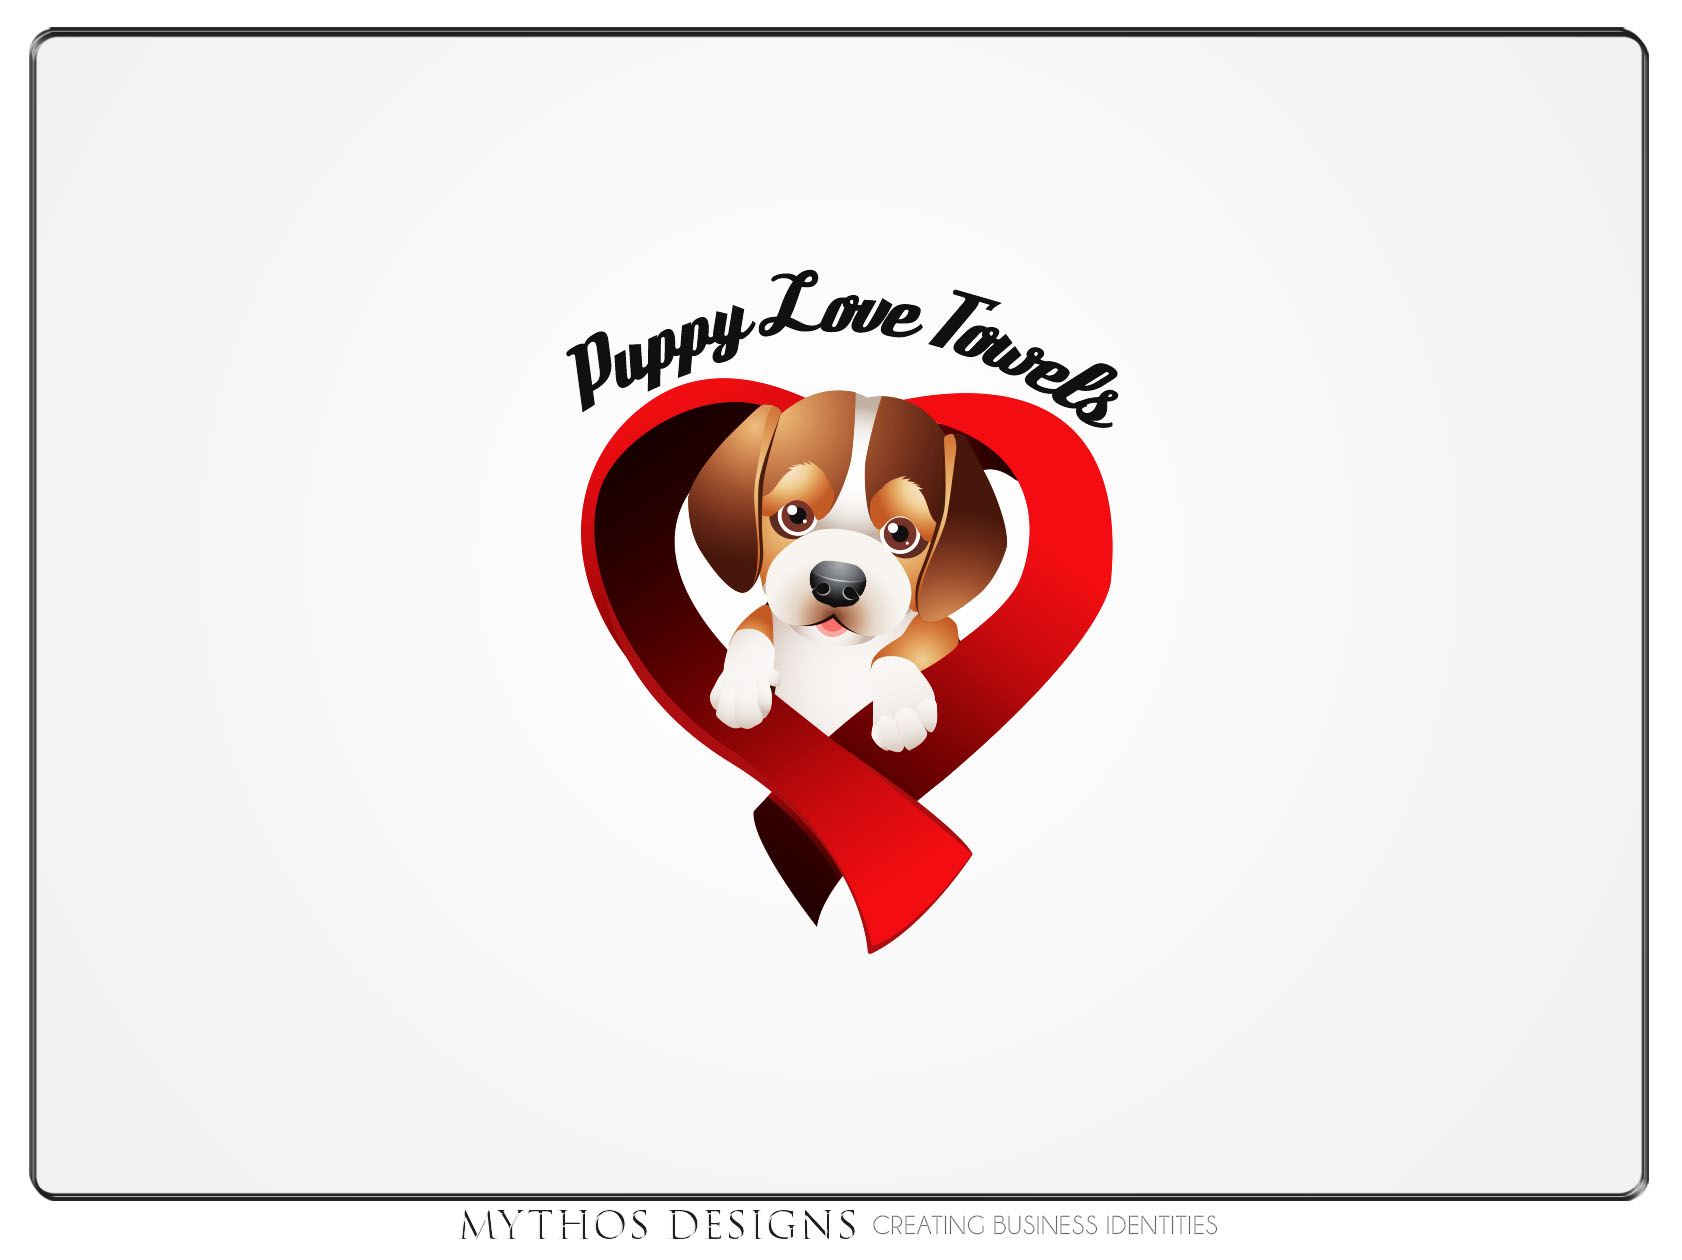 Logo Design by Mythos Designs - Entry No. 76 in the Logo Design Contest Artistic Logo Design for Puppy Love Towels.